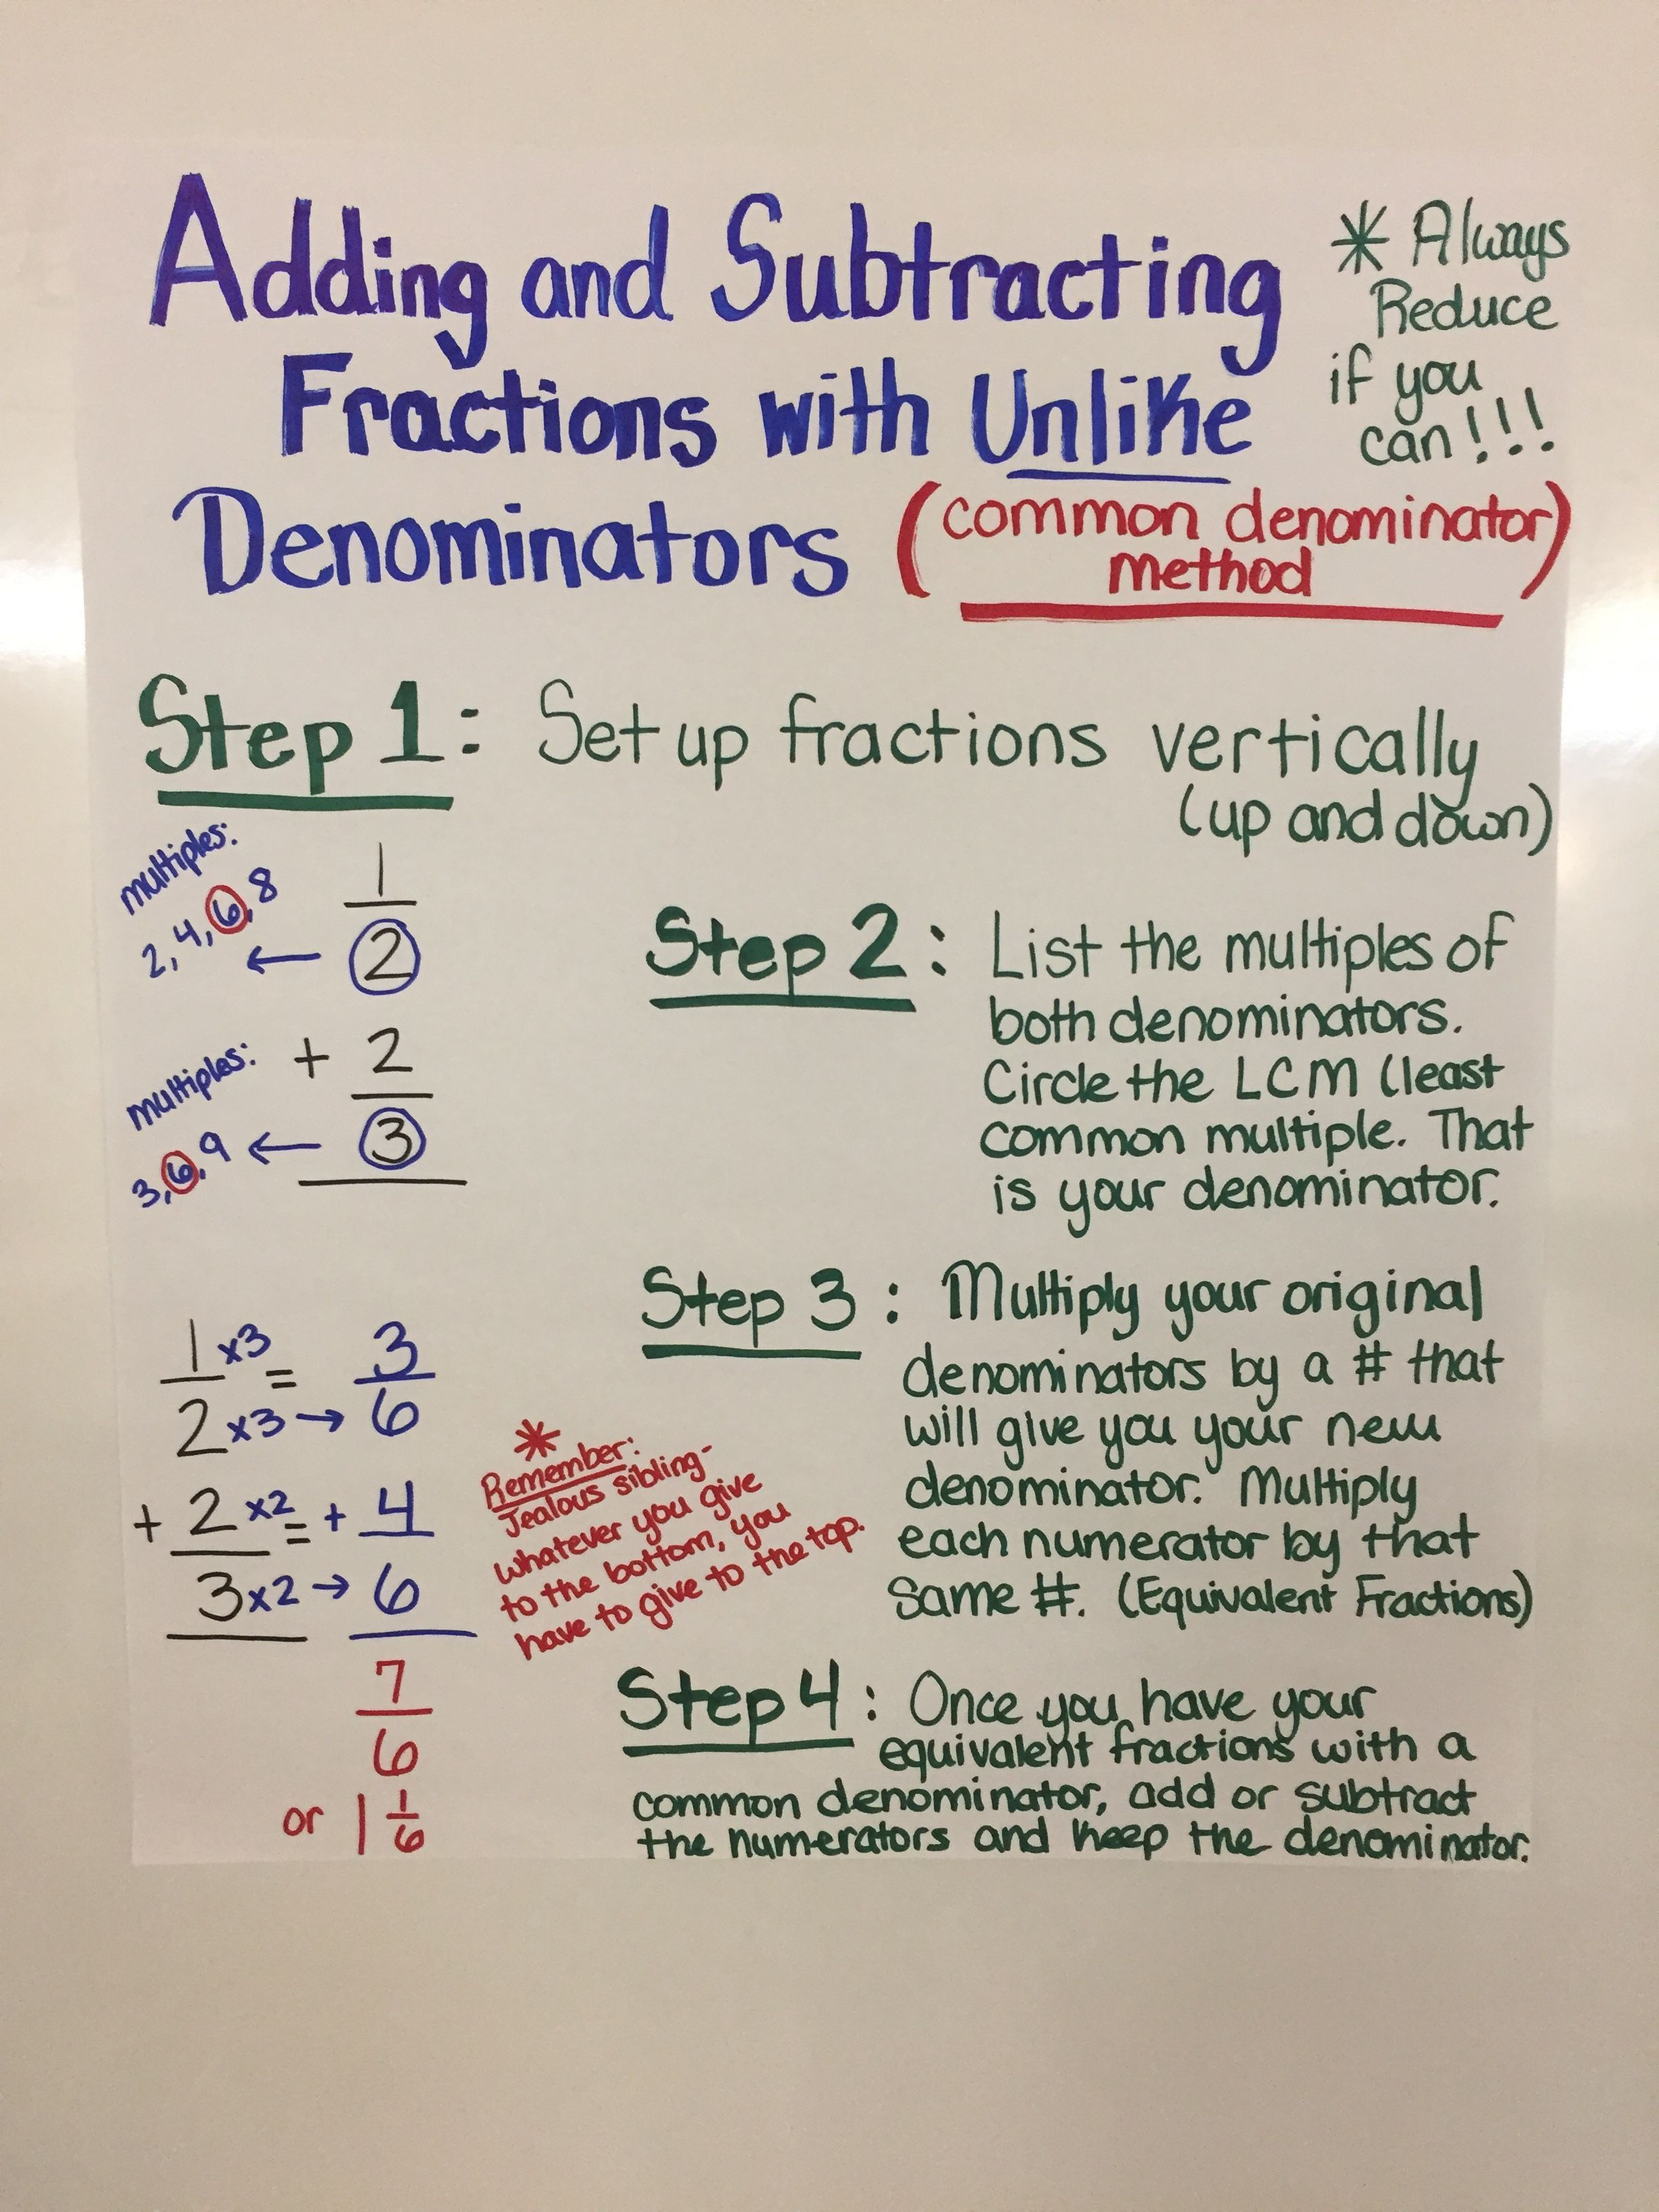 adding and subtracting fractions with unlike denominators - common